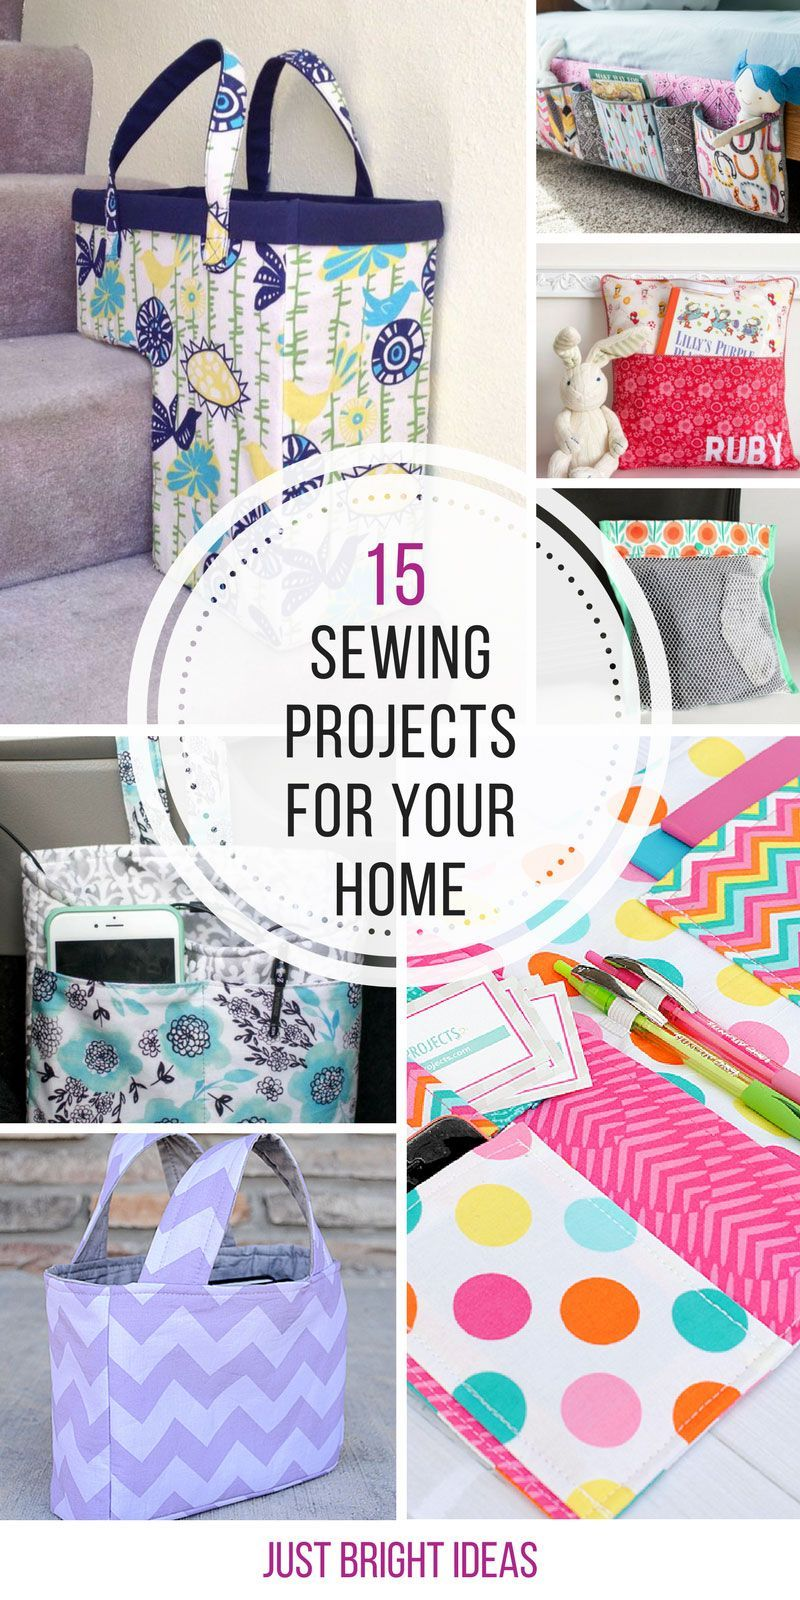 So many great sewing projects for the home - Thanks for sharing ...